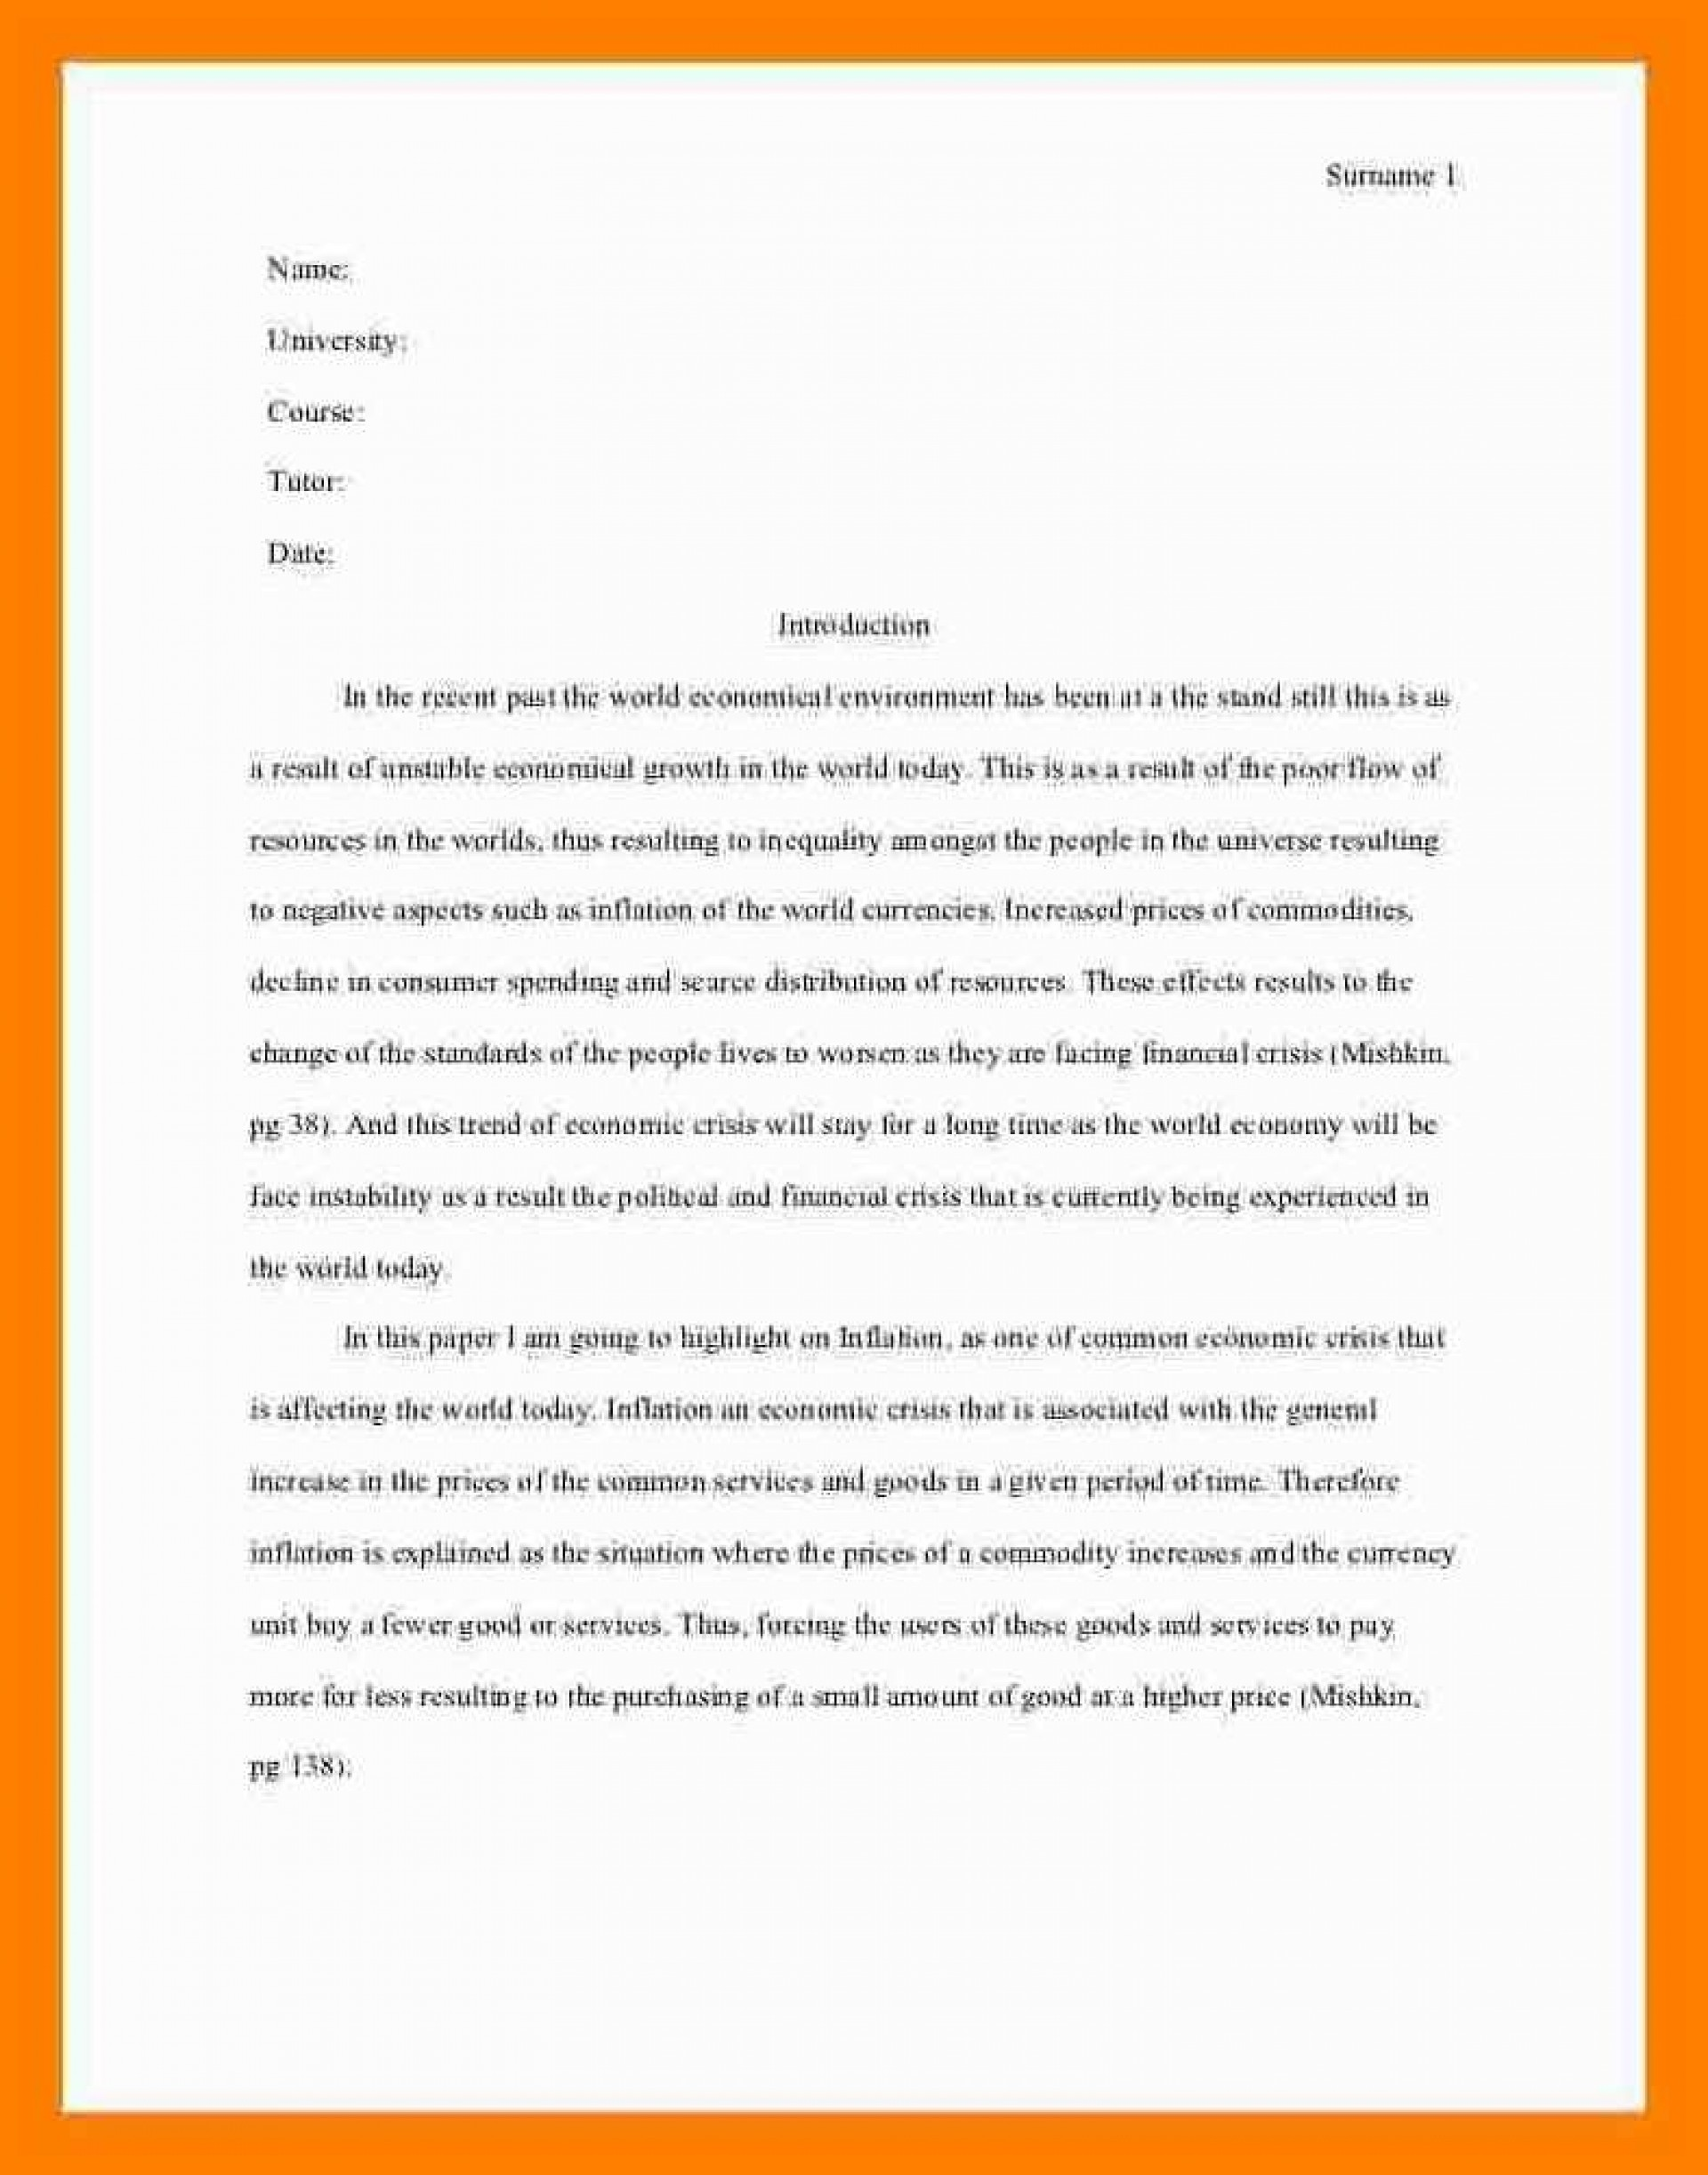 005 Essay Example Asa Format Sample Mla Style One Aspect Of The Current Economic Crisis Remarkable Reference Citation Website For Journal Article 1920